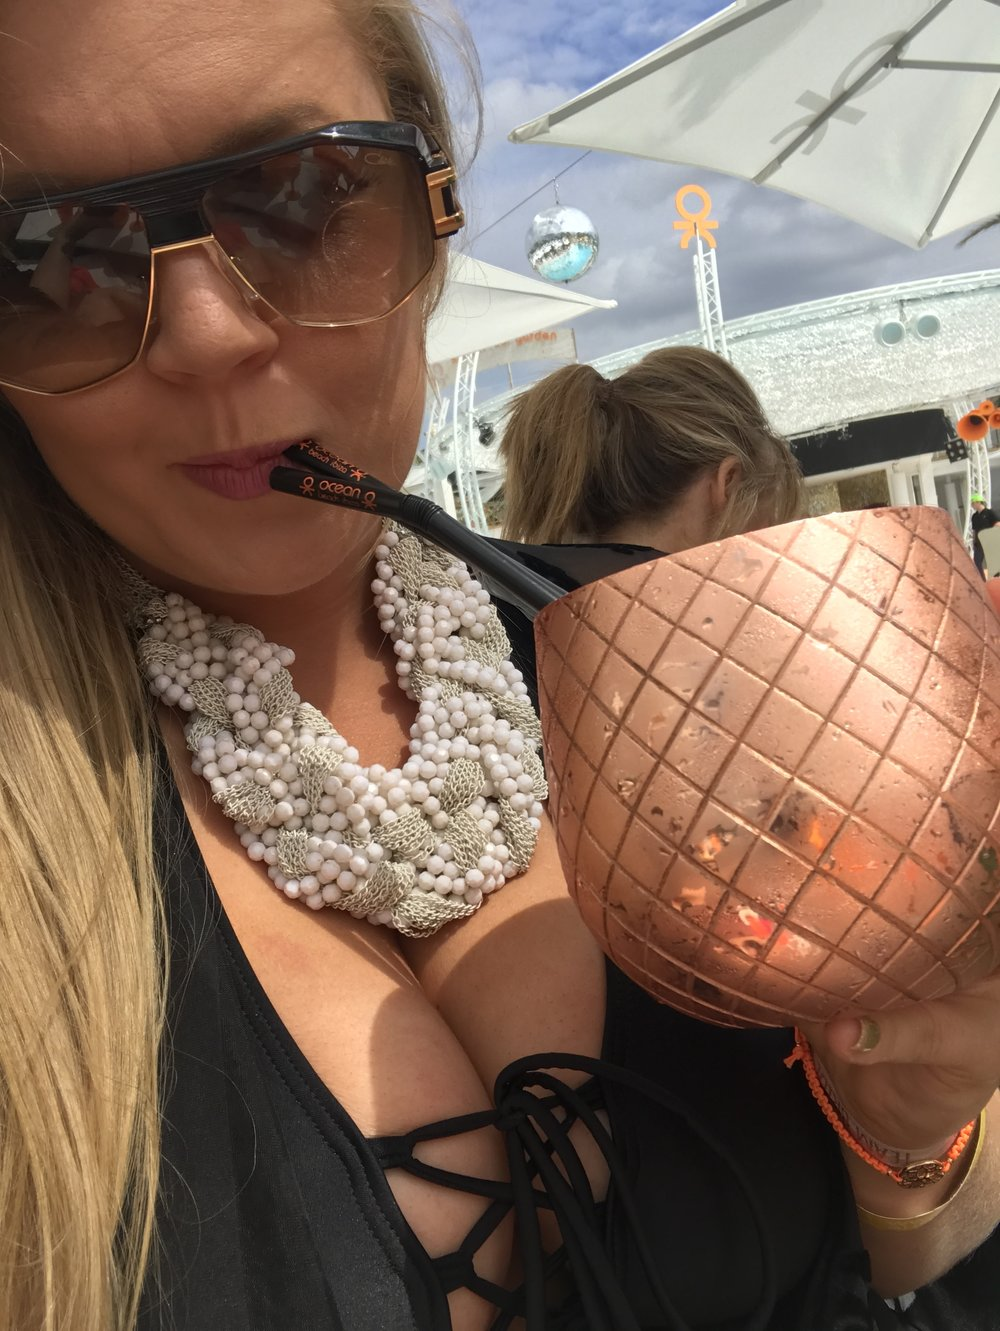 absolut_elyx_copper_pineapple_cazal_smart_buy_sunglasses_designer_sunglasses_what_to_wear_in_ibiza_ocean_beach_elle_blonde_luxury_lifestyle_blog